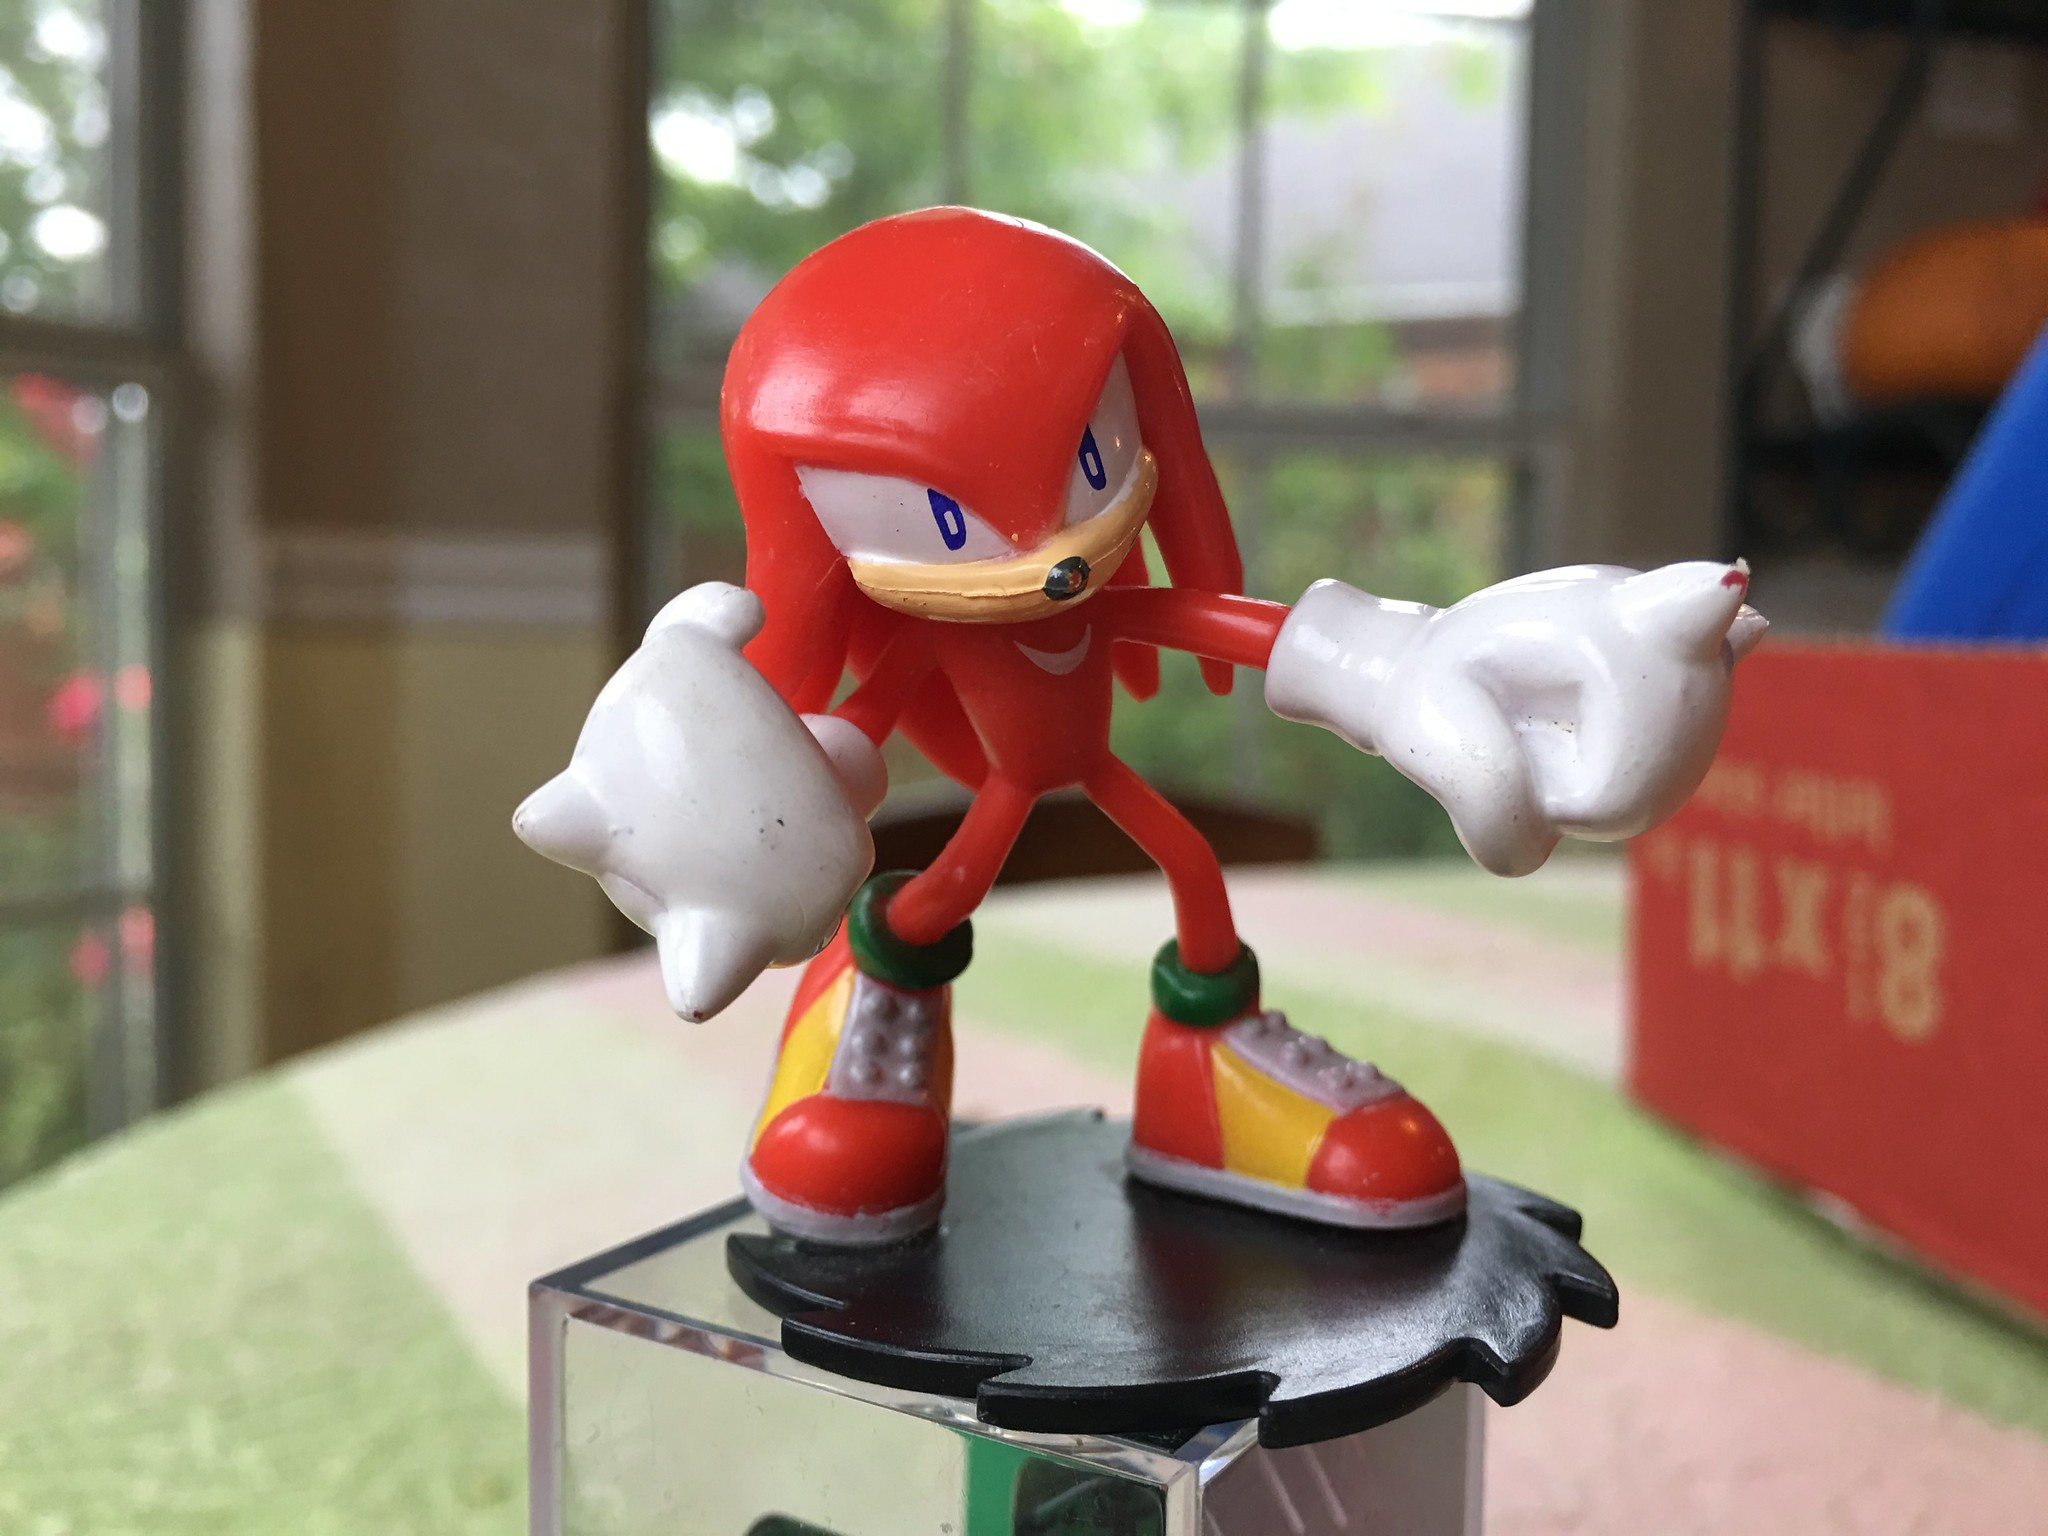 It's Knuckles!